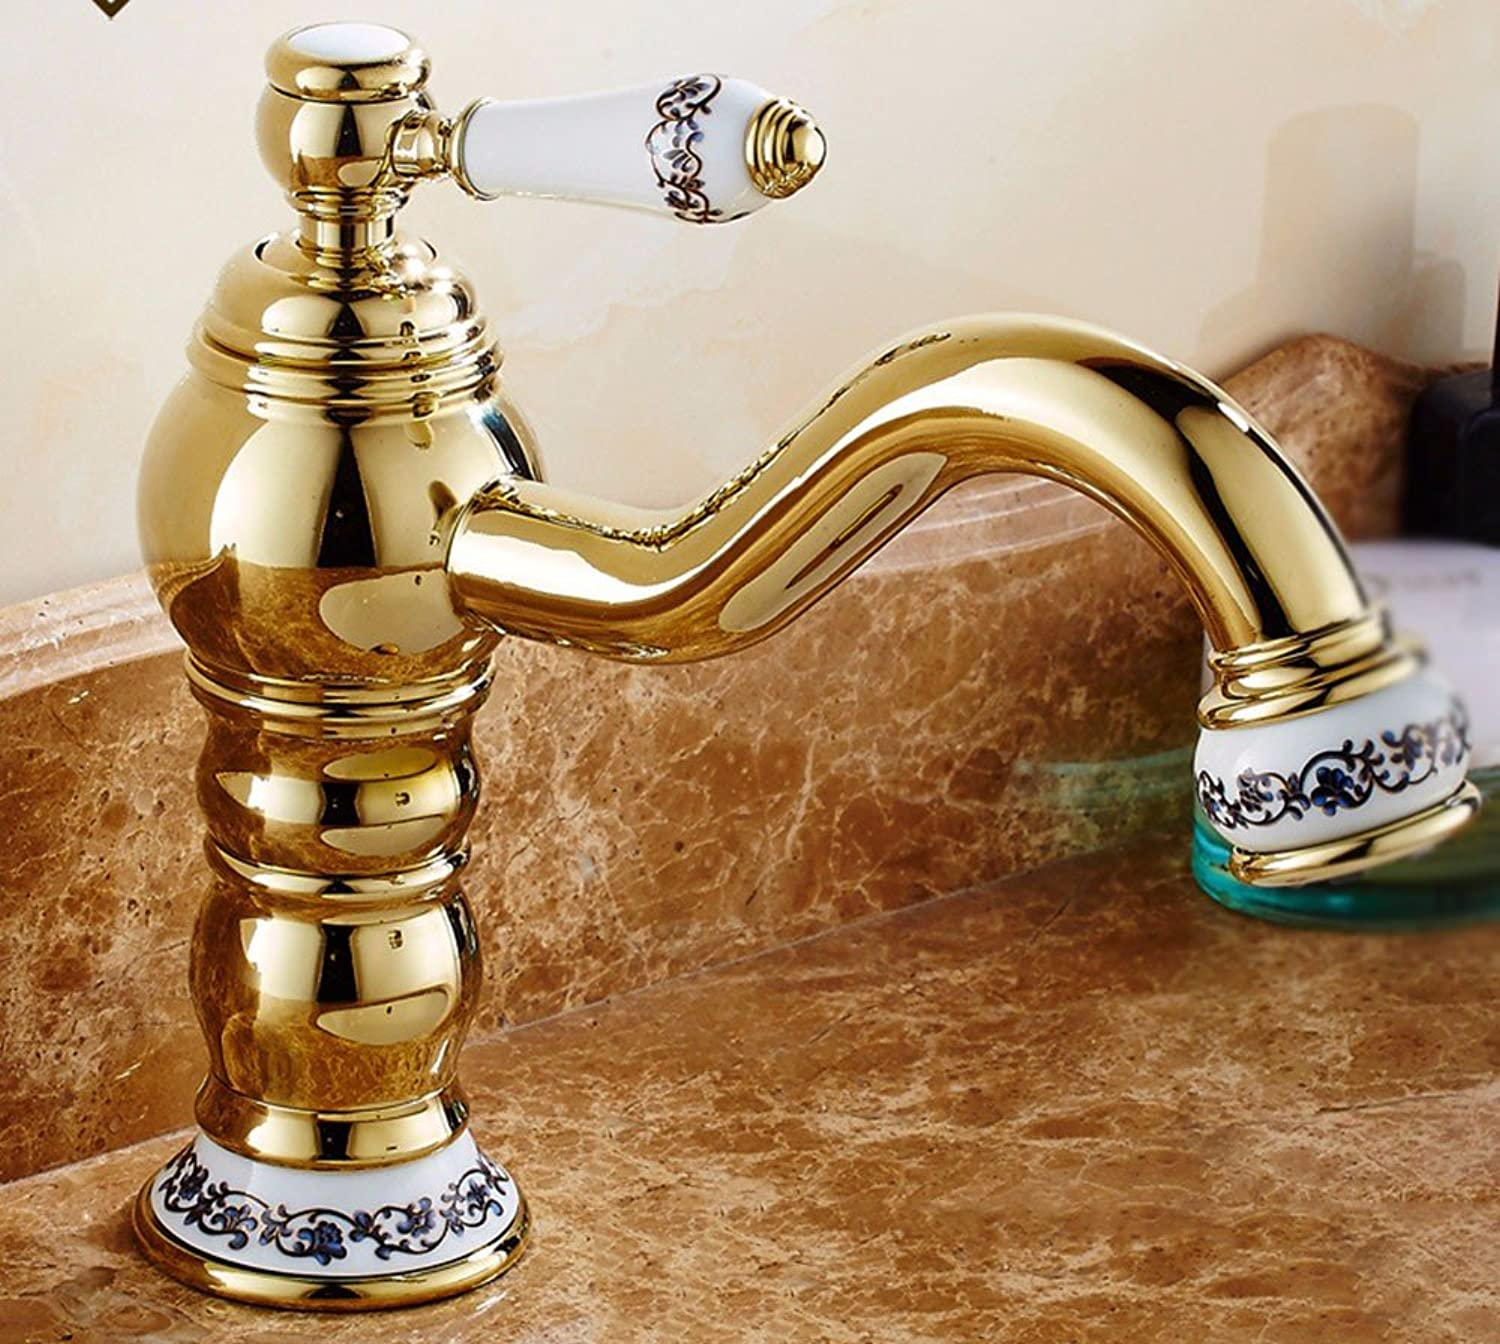 SCLOTHS Bathroom Basin Sink Mixer Tap Modern,simple,copper,gold,hot and cold faucet,d-662